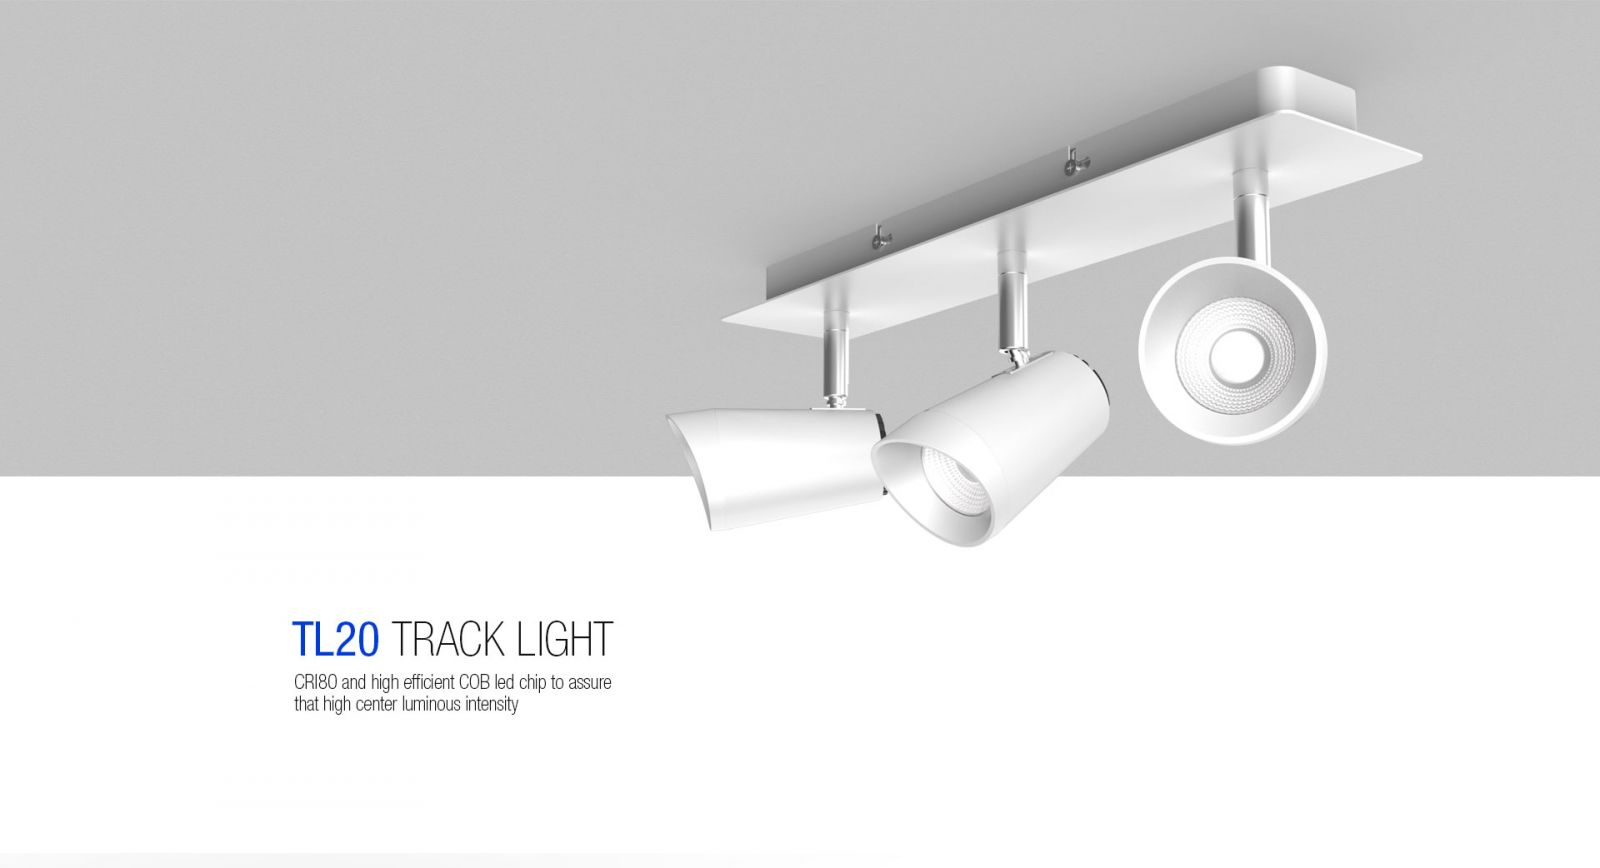 TL20 LED TRACK LIGHT